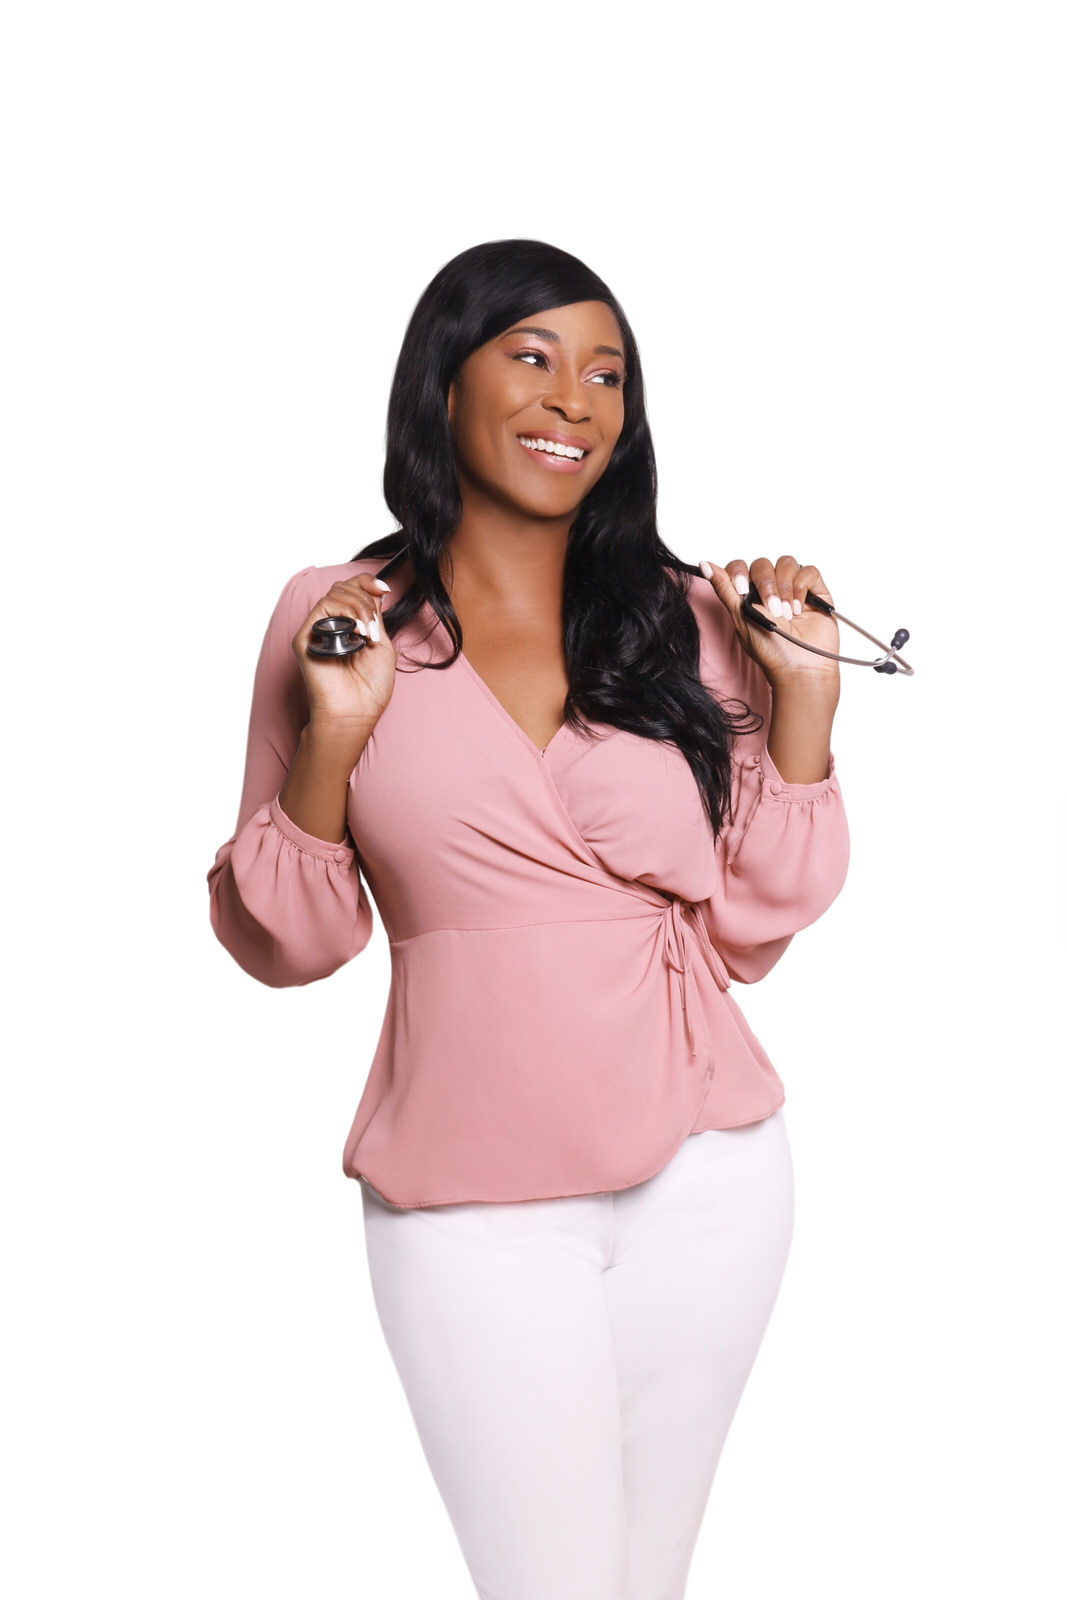 African-American woman in pink blouse and white pants with stethoscope, white background.jpg